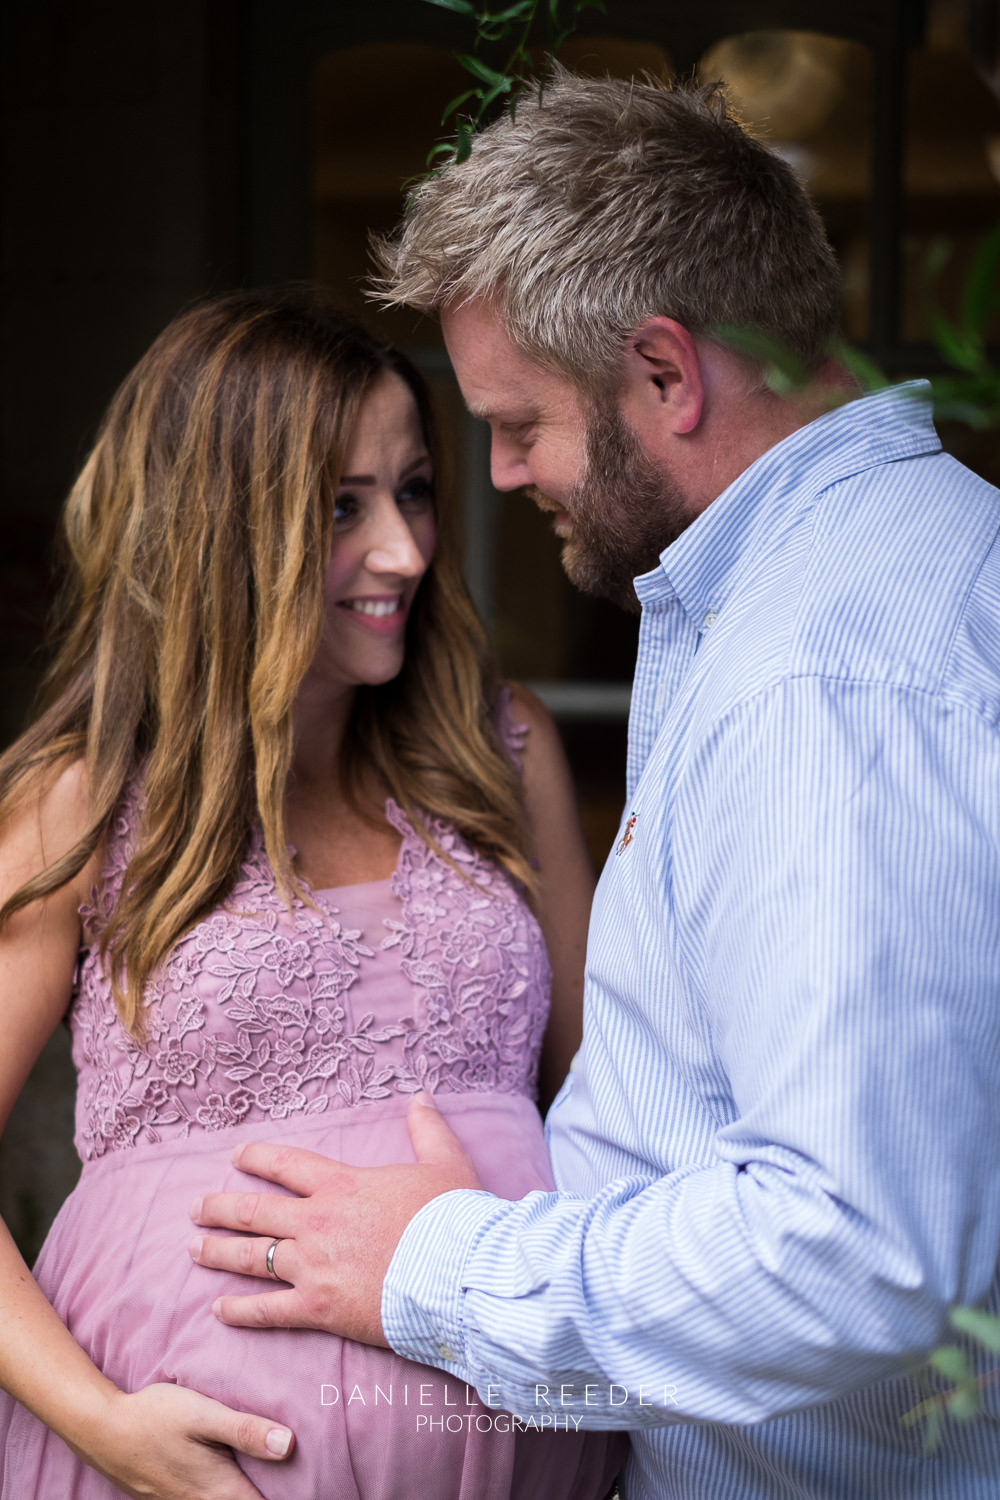 Husband and wife stood gazing at each other during maternity photoshoot